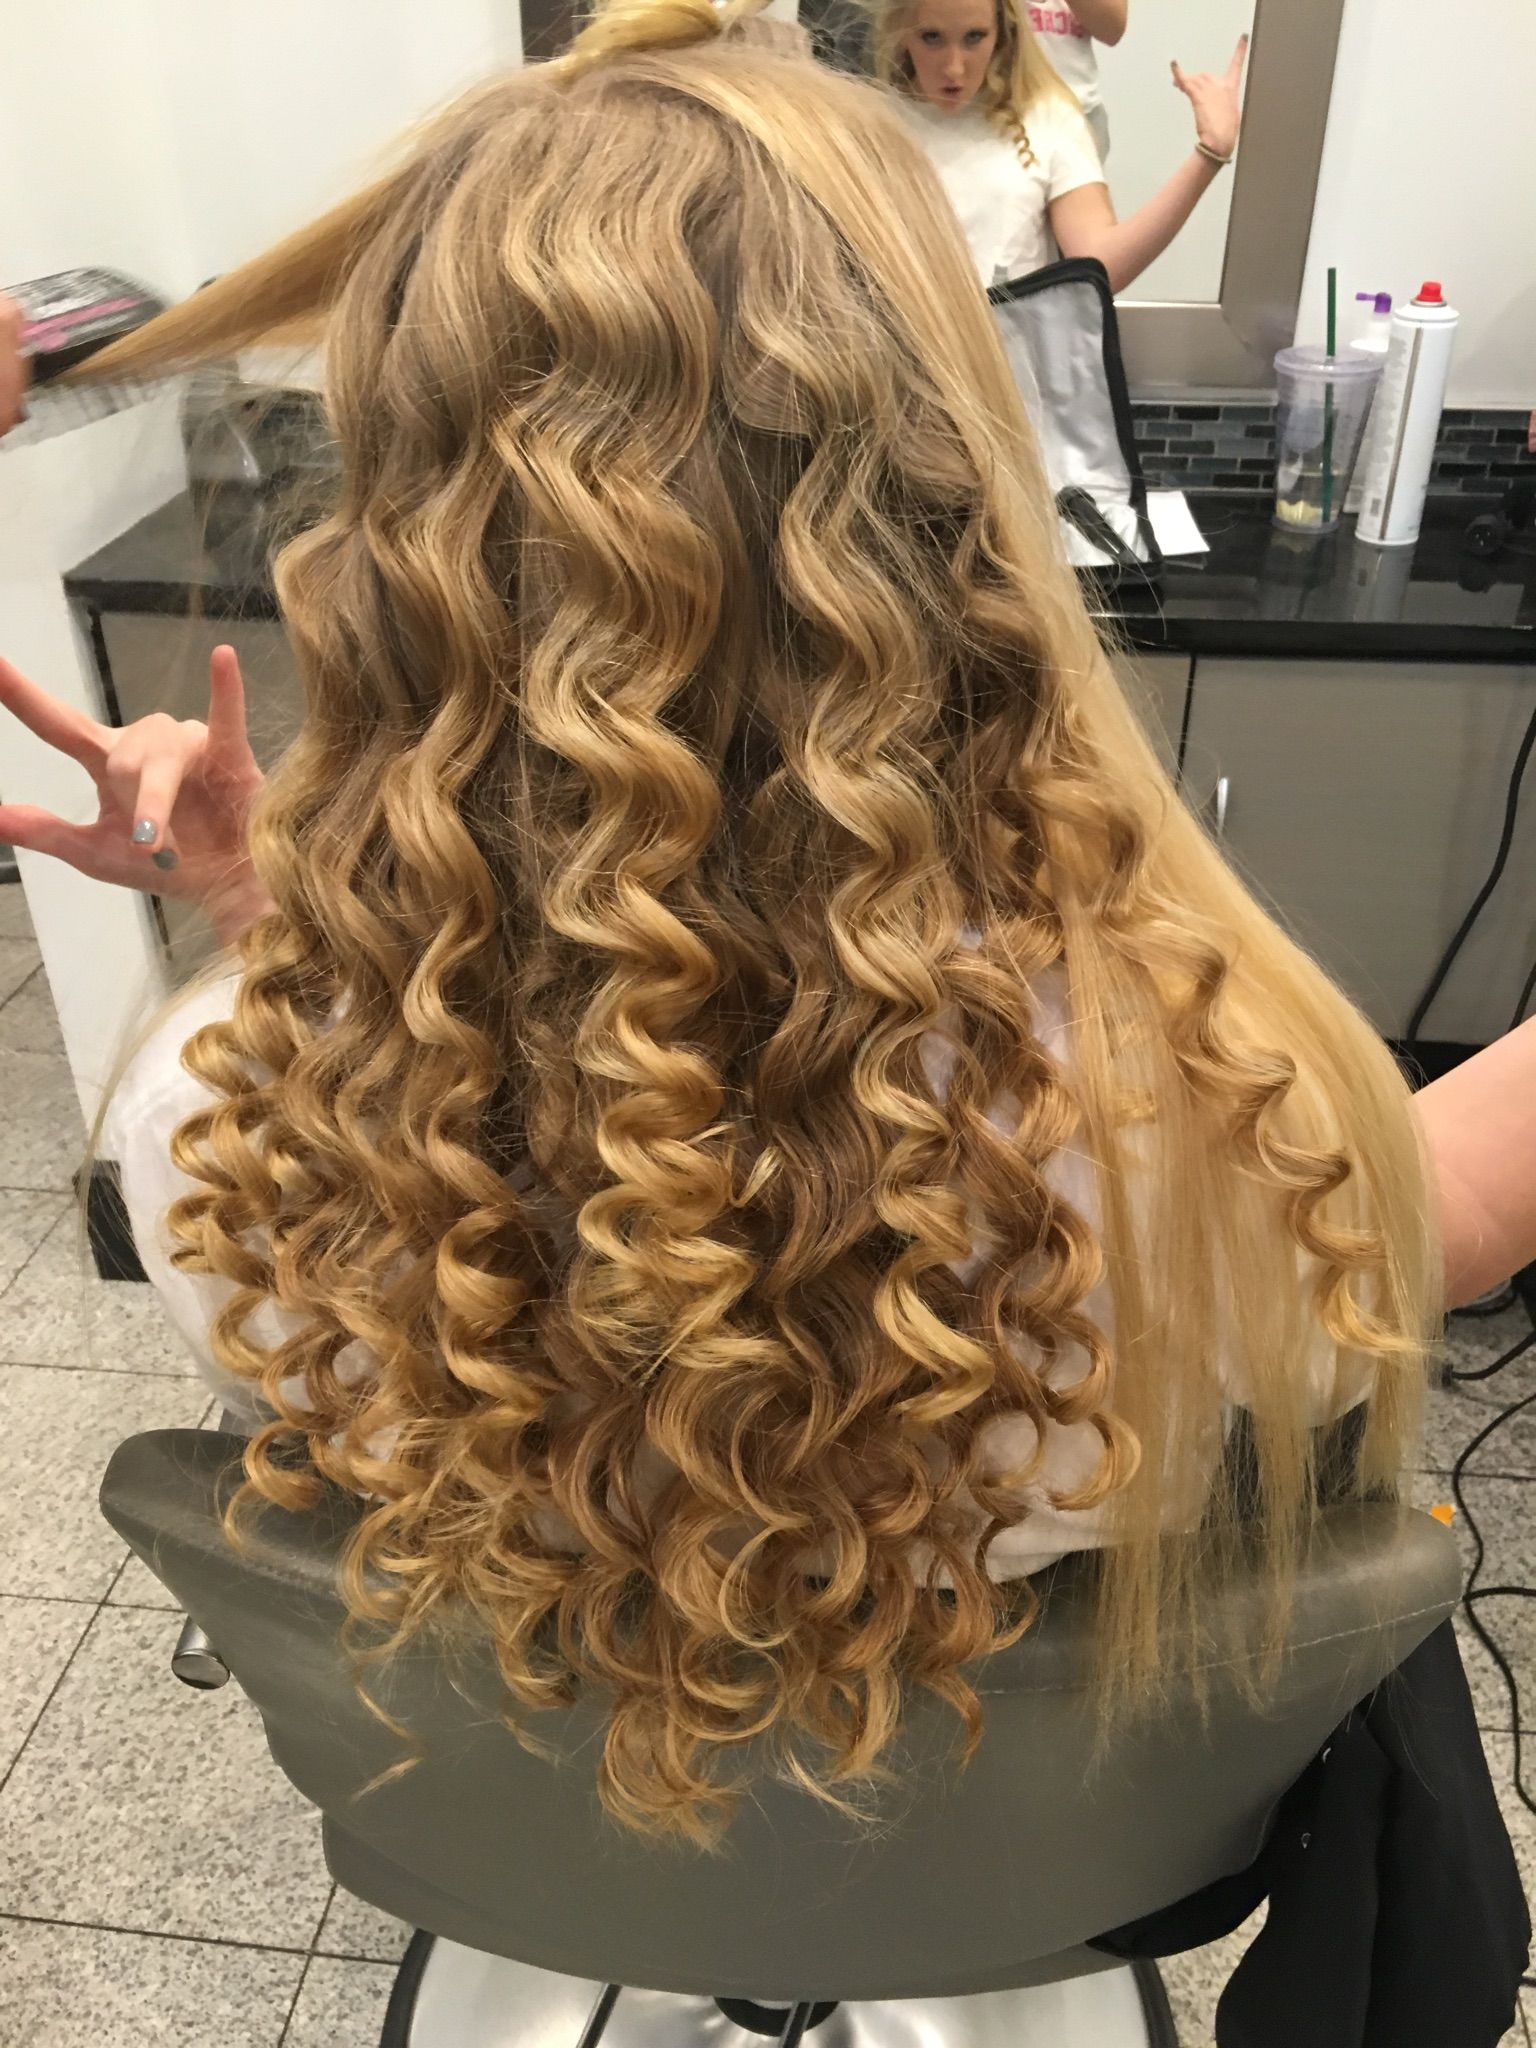 Super Straight Hair Made Curly With A Tapered Curling Wand For A Romantic Curly Bohemian Look Curl Hair With Straightener Long Hair Styles Beautiful Hair